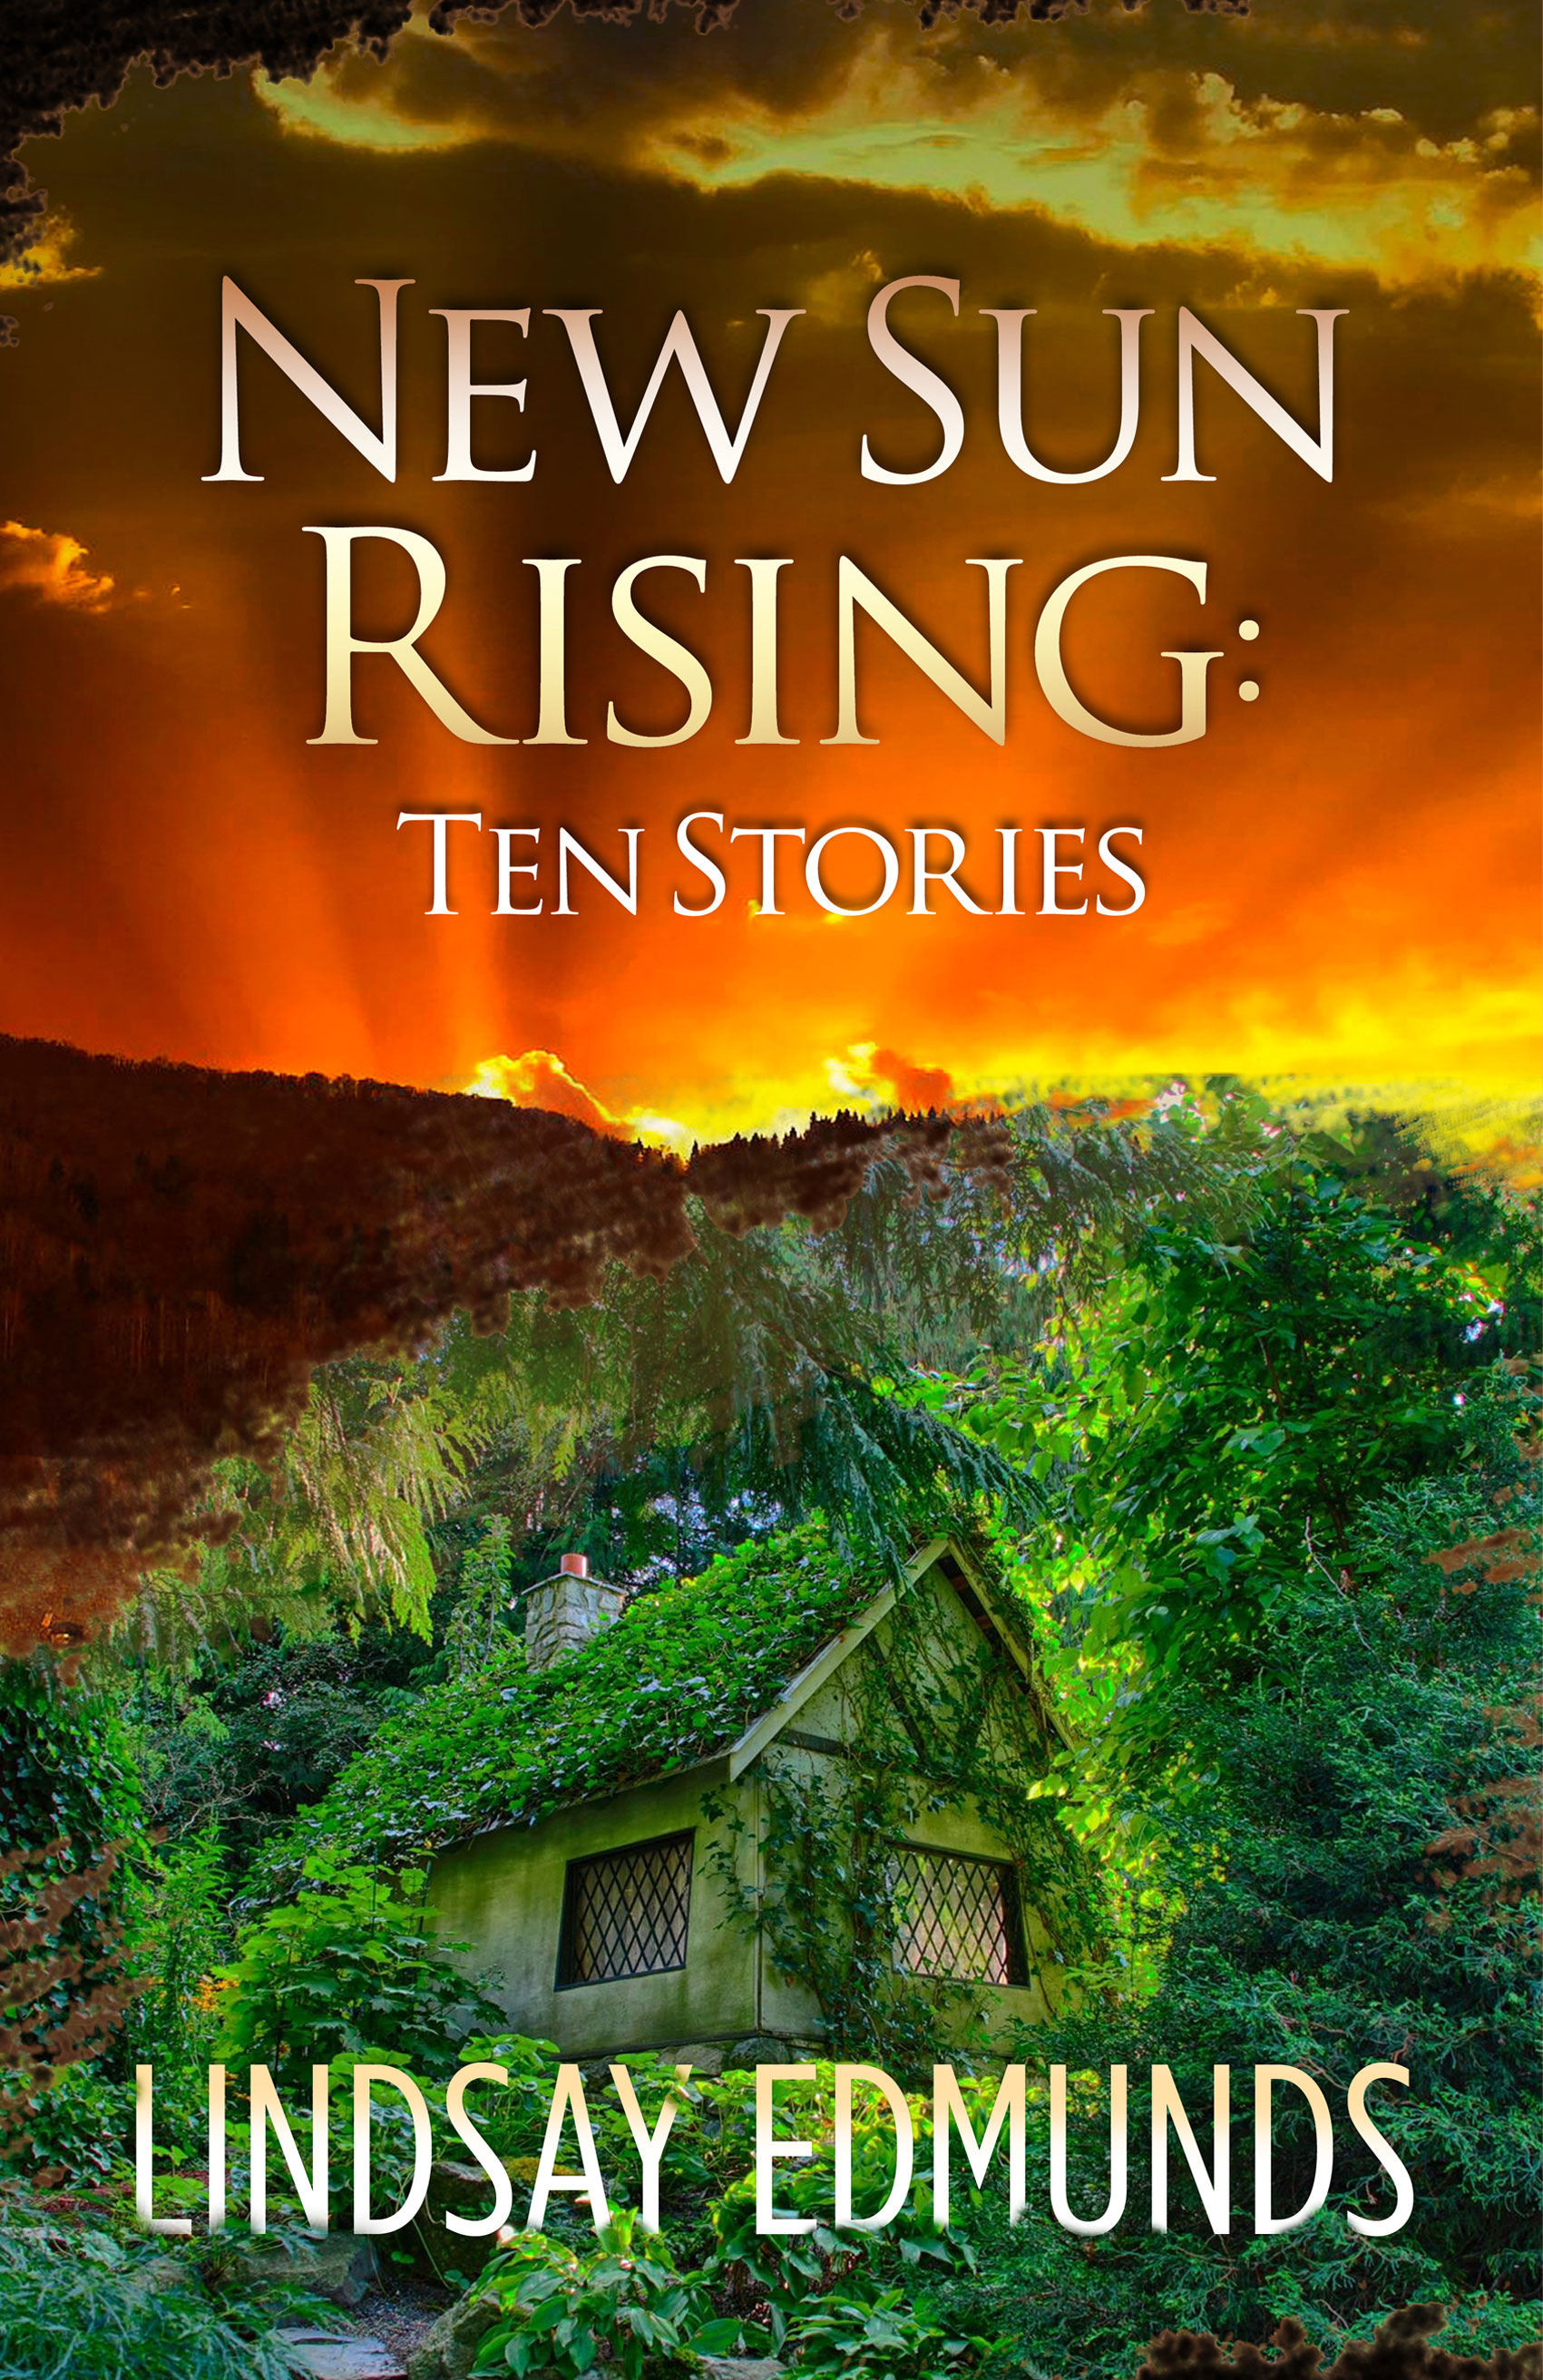 New Sun Rising by Lindsay Edmunds